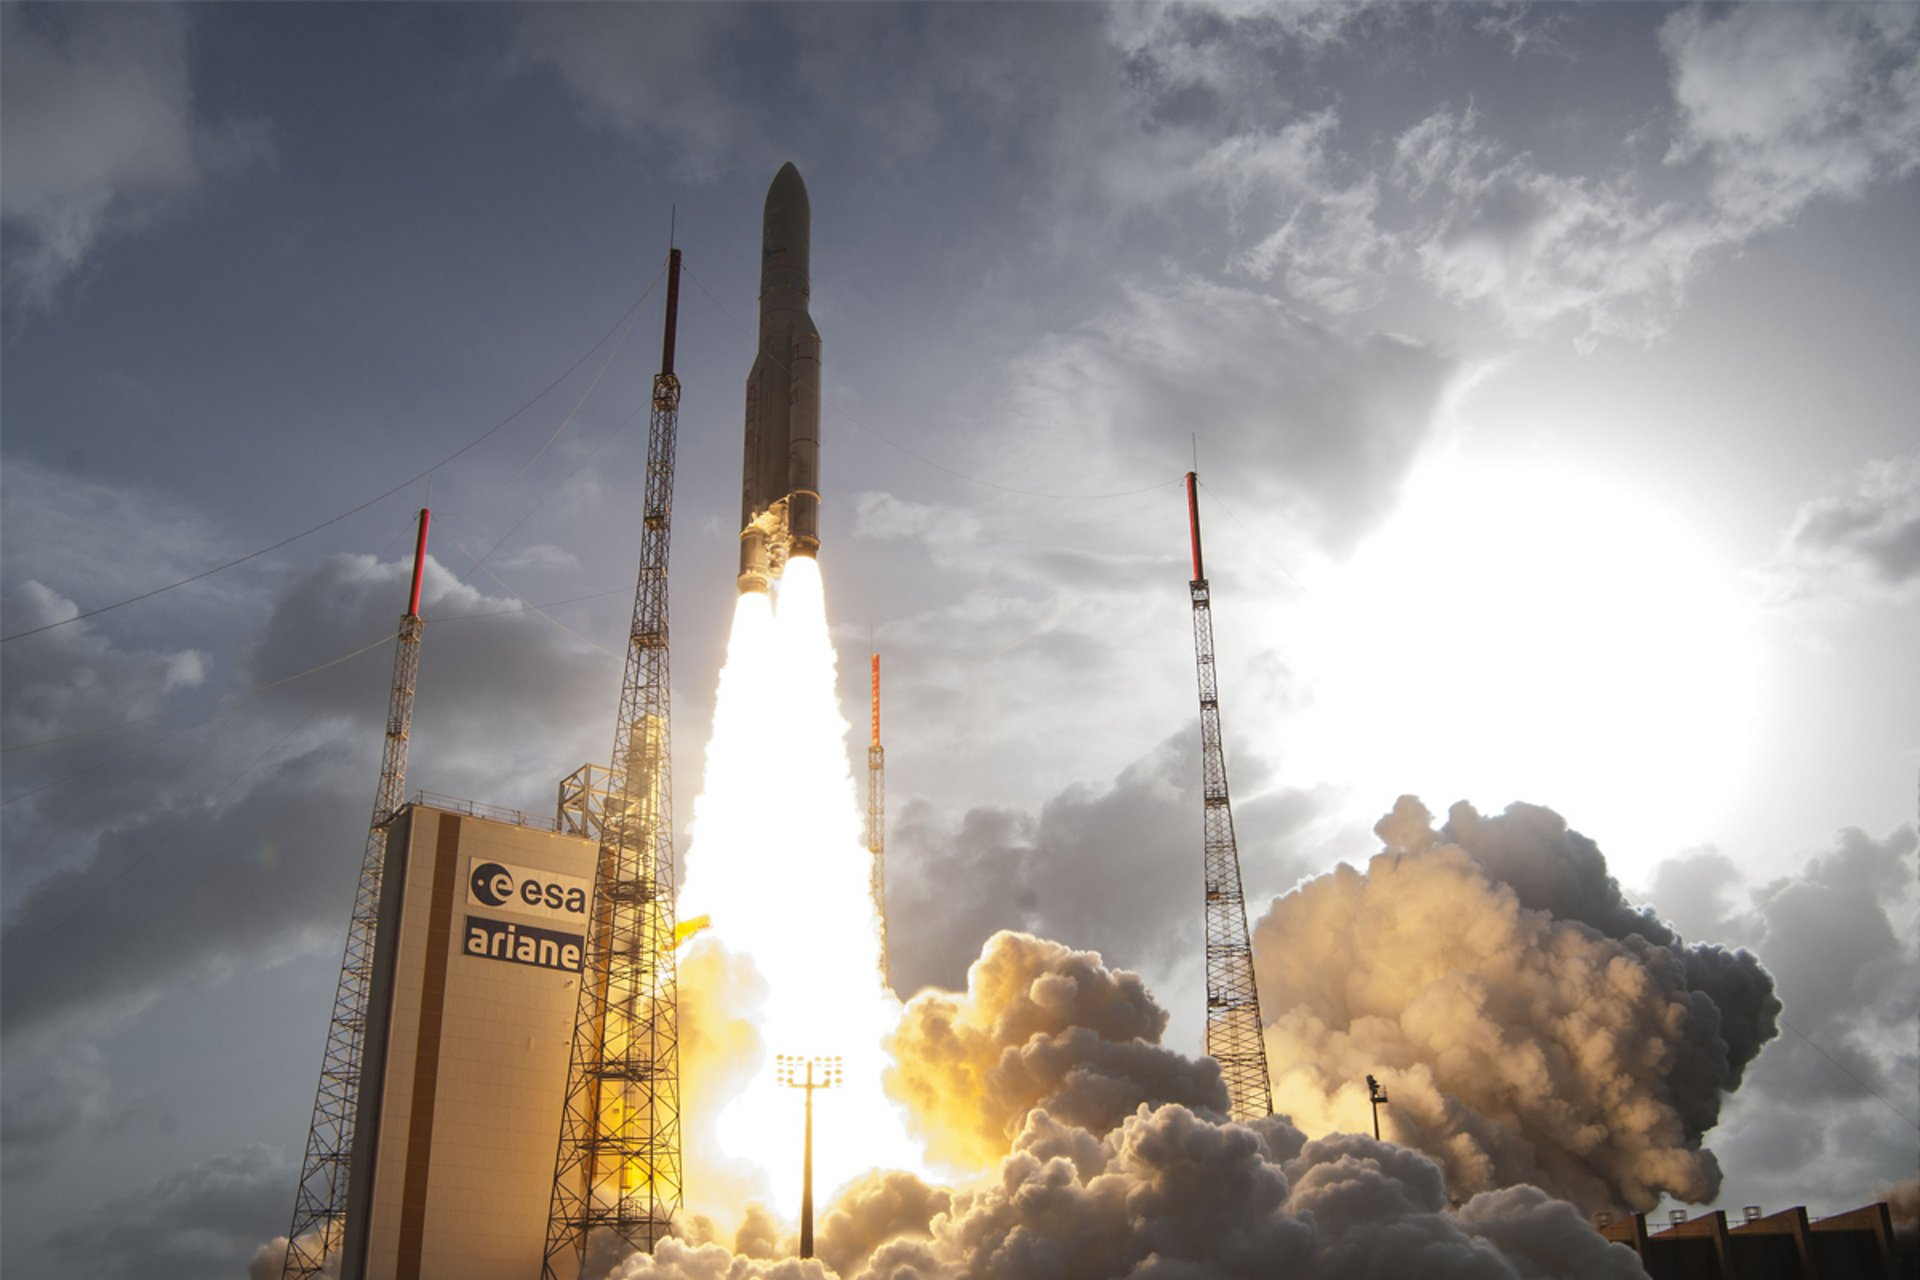 Ariane 5 launch from Kourou